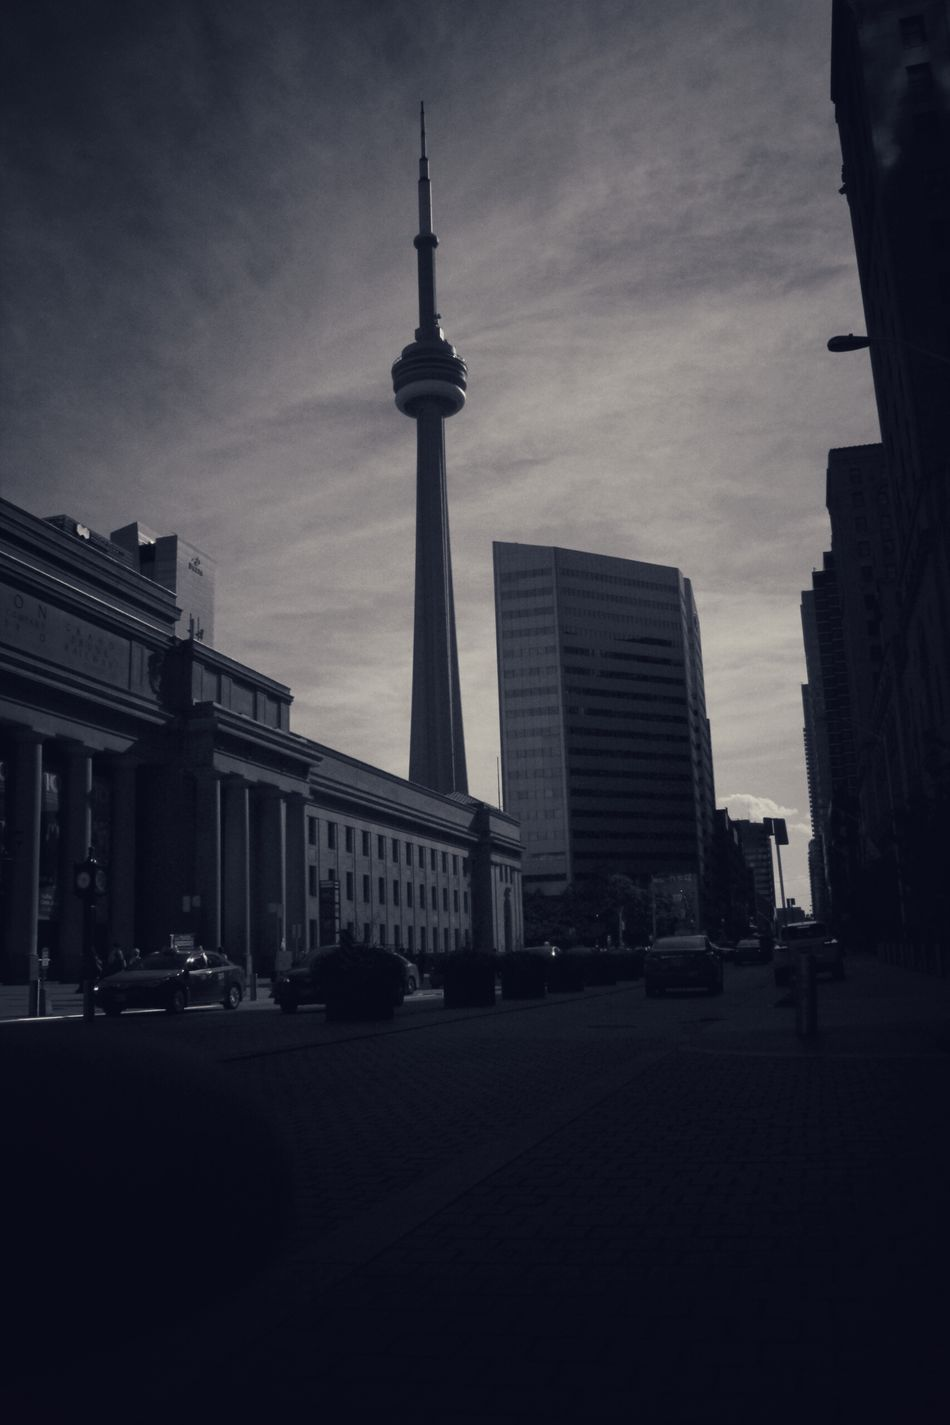 Welcome To Black Architecture Toronto Landscape Toronto Black & White Architecture_bw Geometric Shapes Architecturephotography EyeEm Best Shots Gettyimages Outdoors Samsungphotography Lebanese_talents Home Is Where The Art Is City Life EyeEm Best Edits Torontophotography